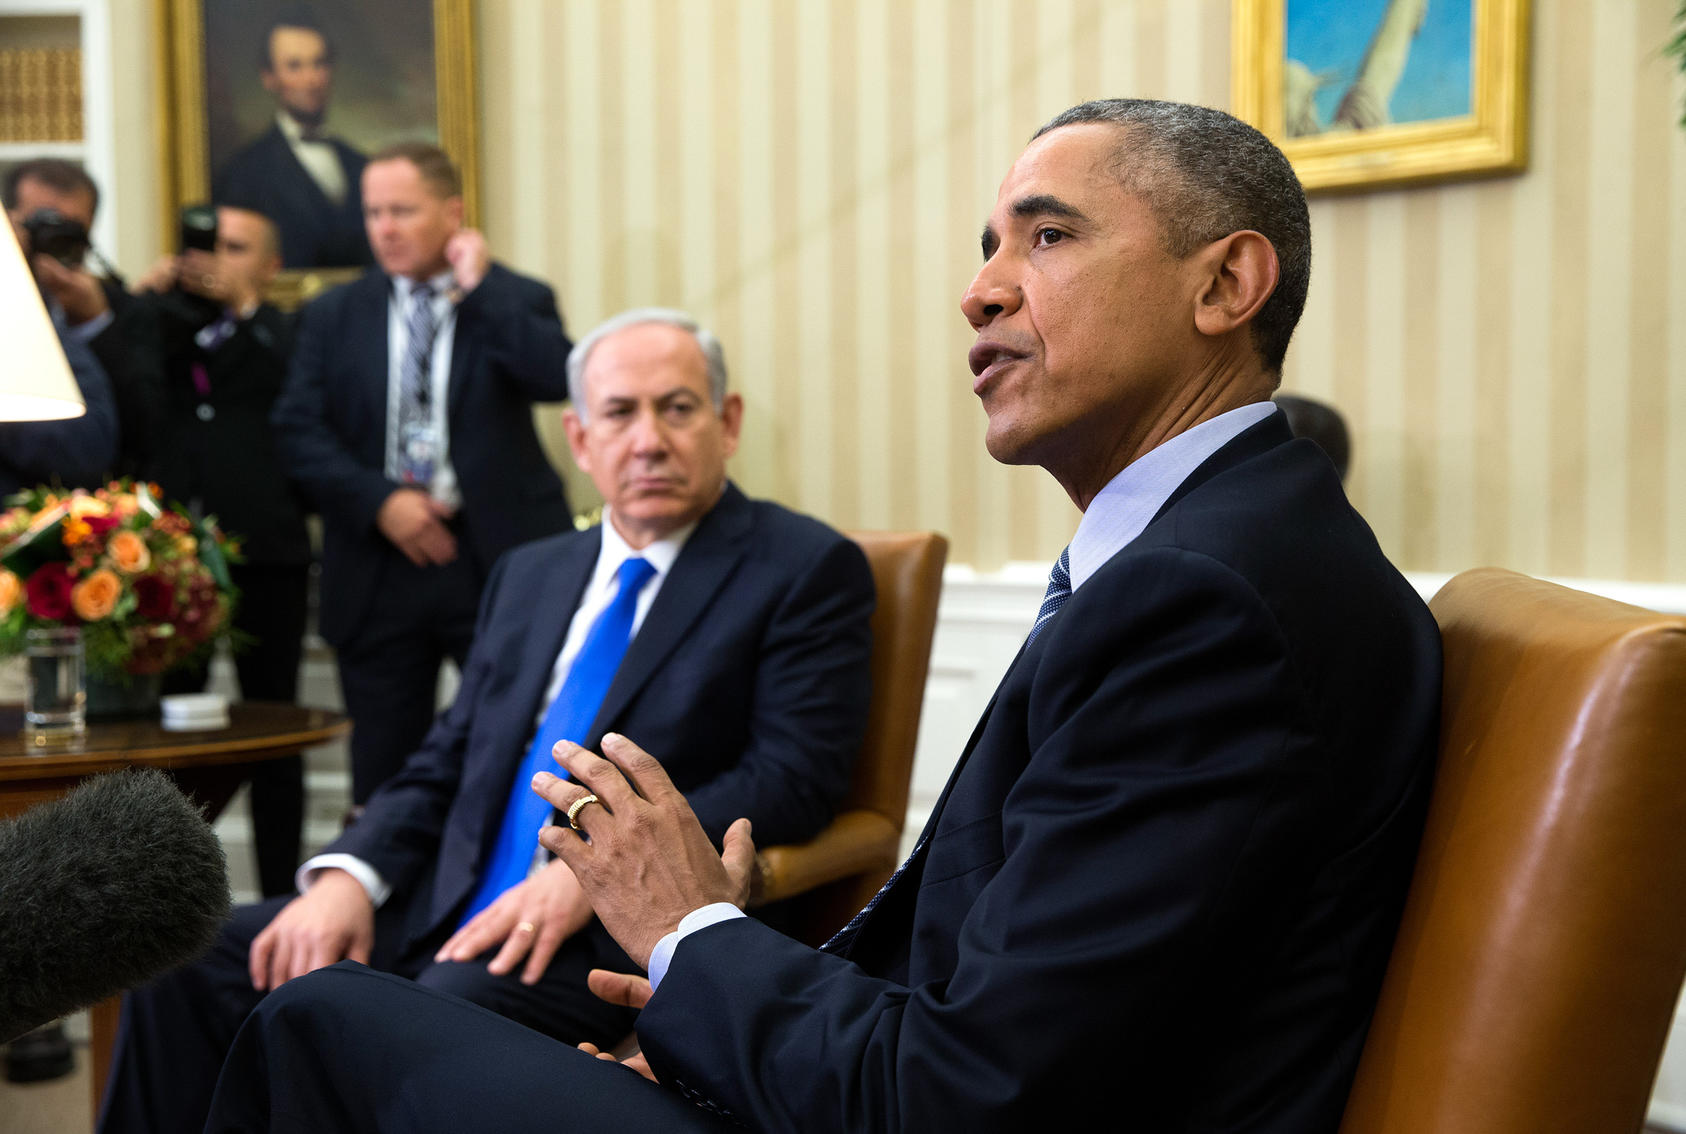 President Barack Obama speaks to reporters as Israeli Prime Minister Benjamin Netanyahu looks on during a bilateral meeting in the Oval Office of the White House, in Washington, Nov. 9, 2015. After months of long-distance jousting over the Iran nuclear deal, Obama and Netanyahu met Monday for the first time in more than a year to try and put their feuding behind them